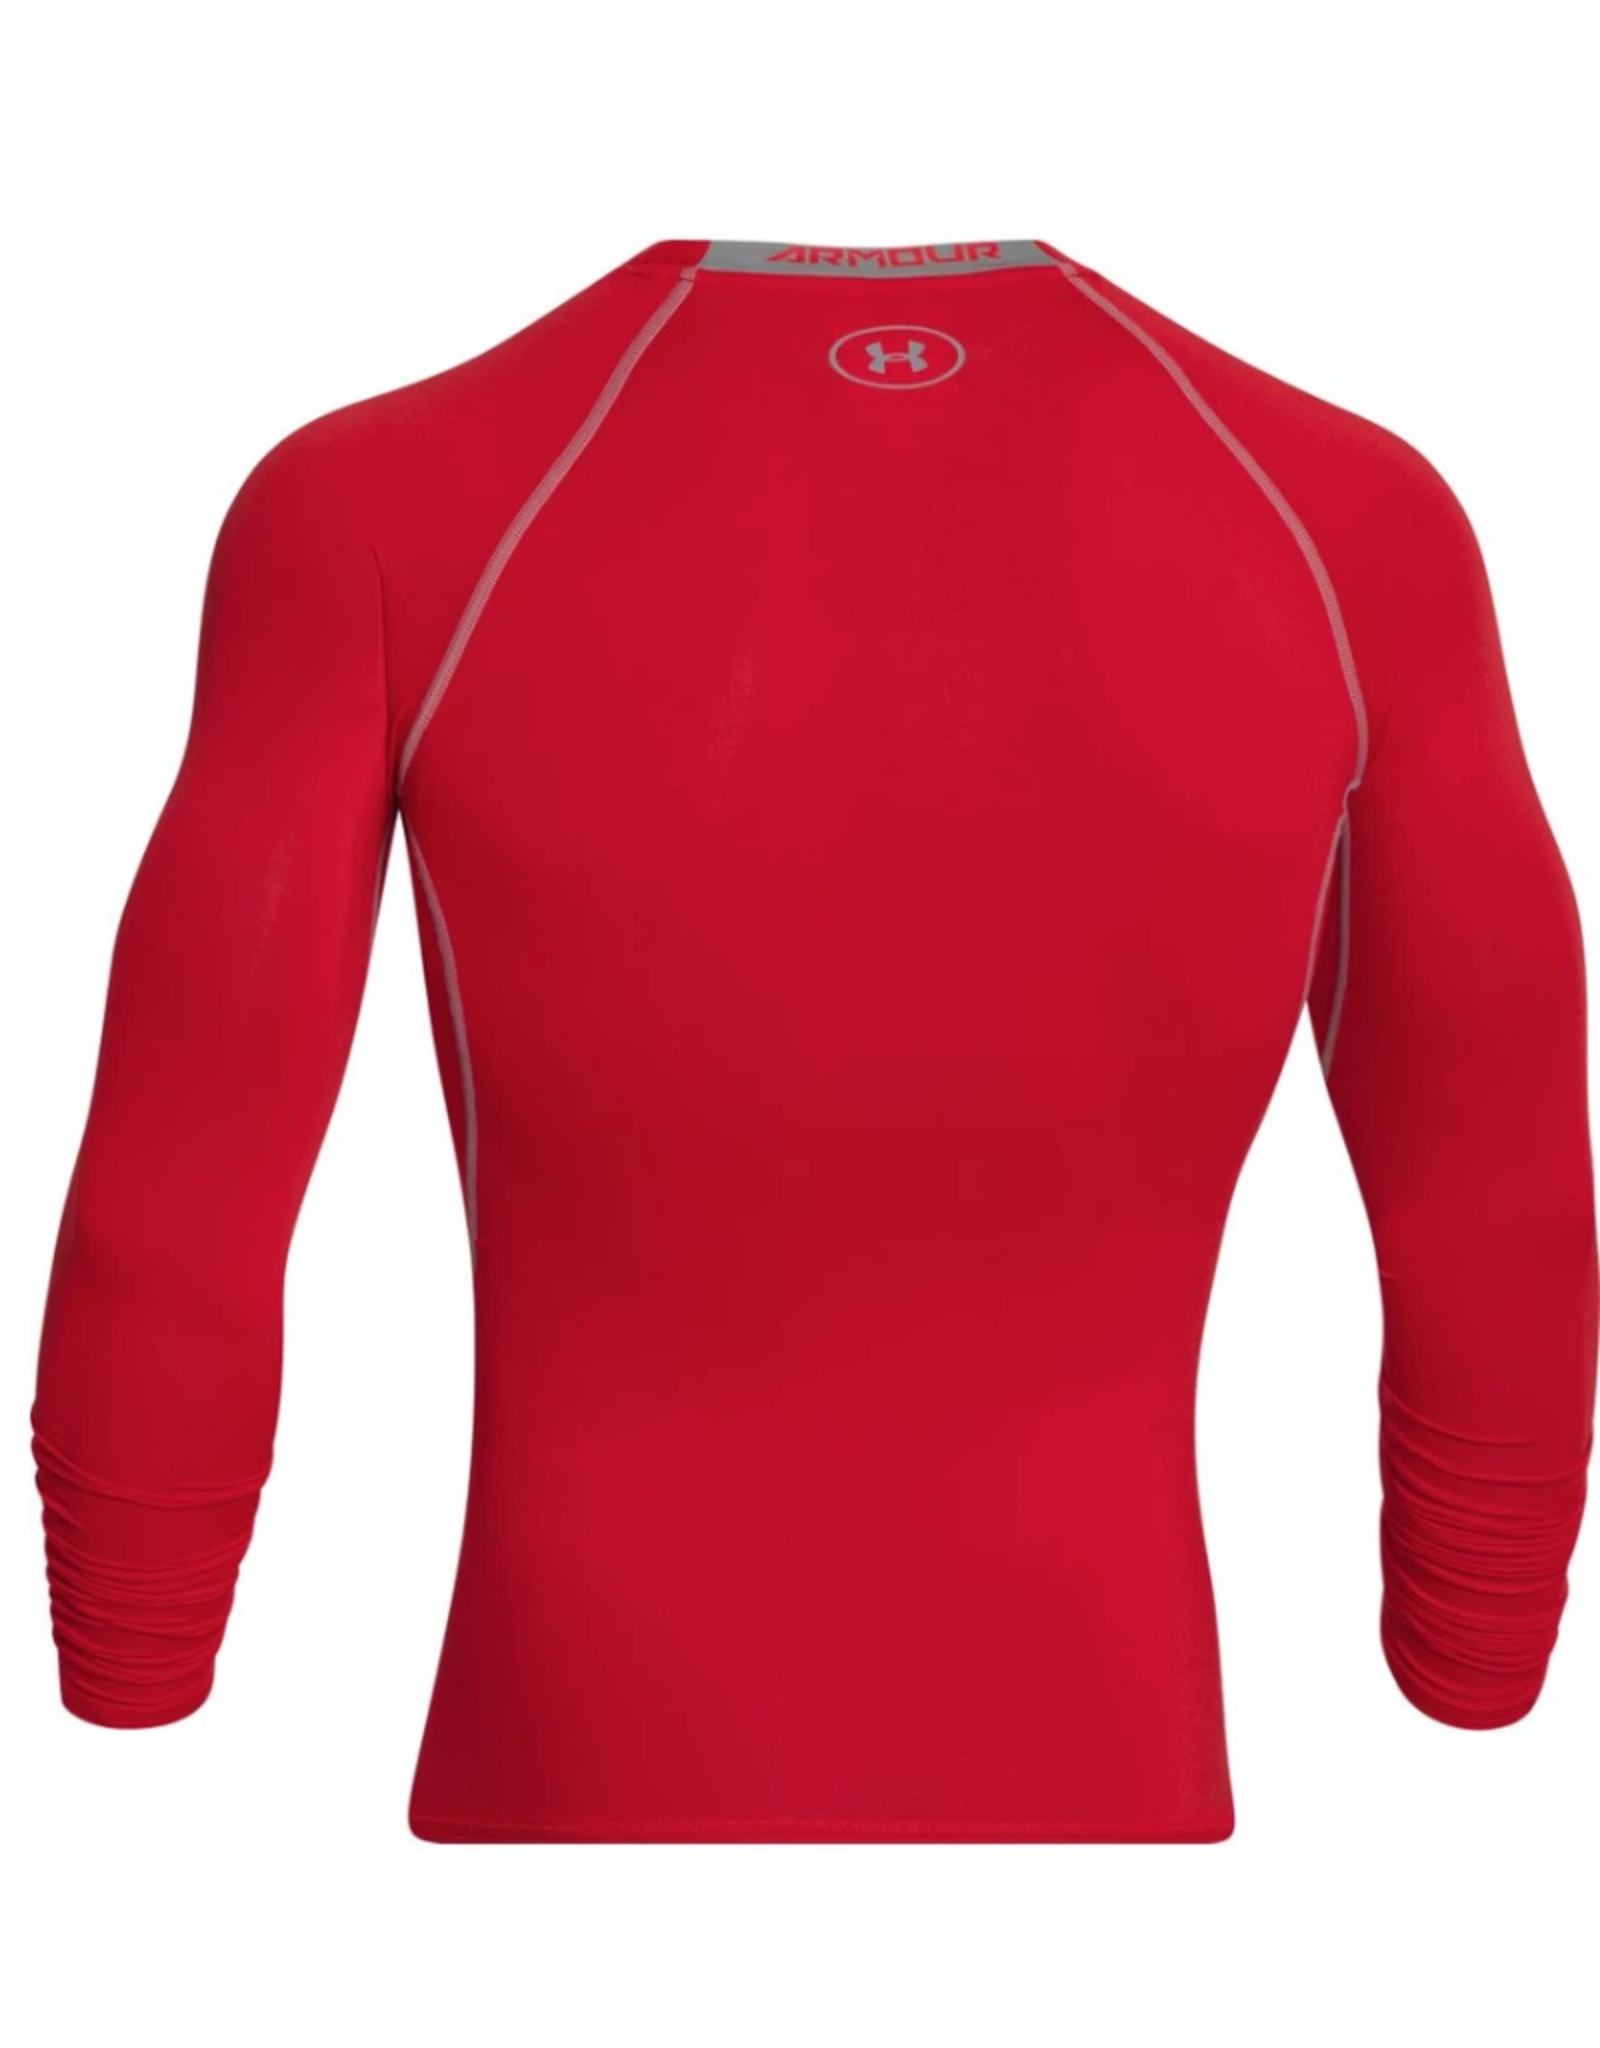 Under Armour Compression Long Sleeve Red Shirt